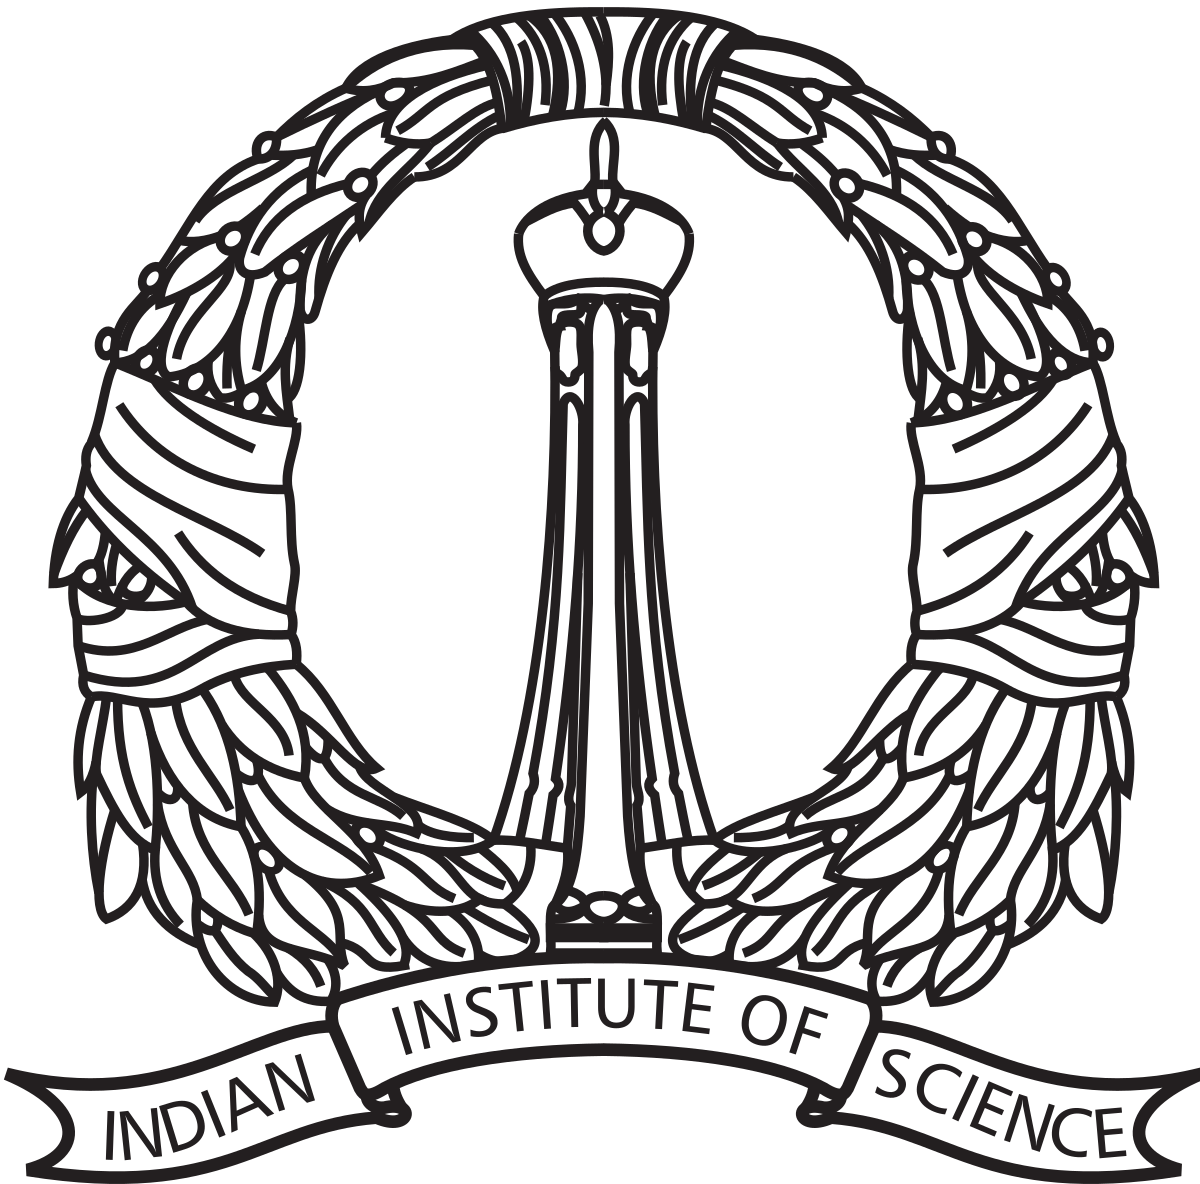 CfP: Conference on Autophagy and lysosomes at IISc Bangalore [Jan 16-18]: Submit by Nov 30